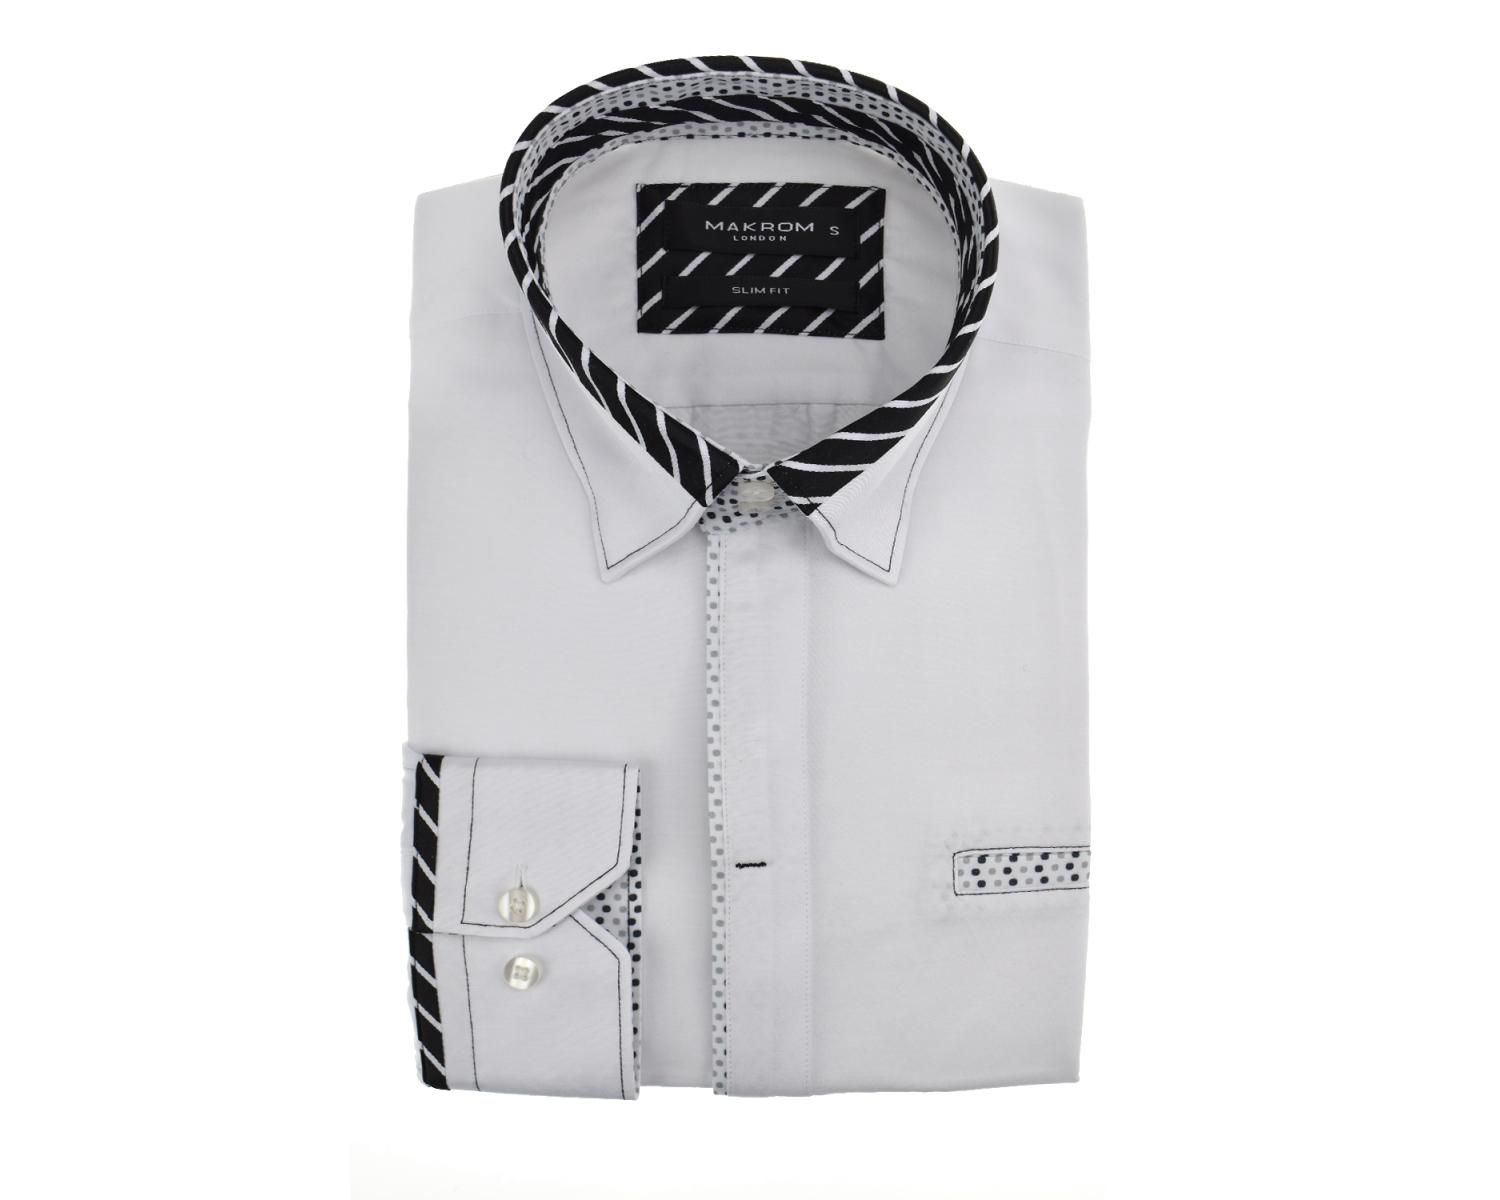 81617247d62 ... SL 5667 Men's white striped and polka dot trim shirt with pocket Men's  shirts